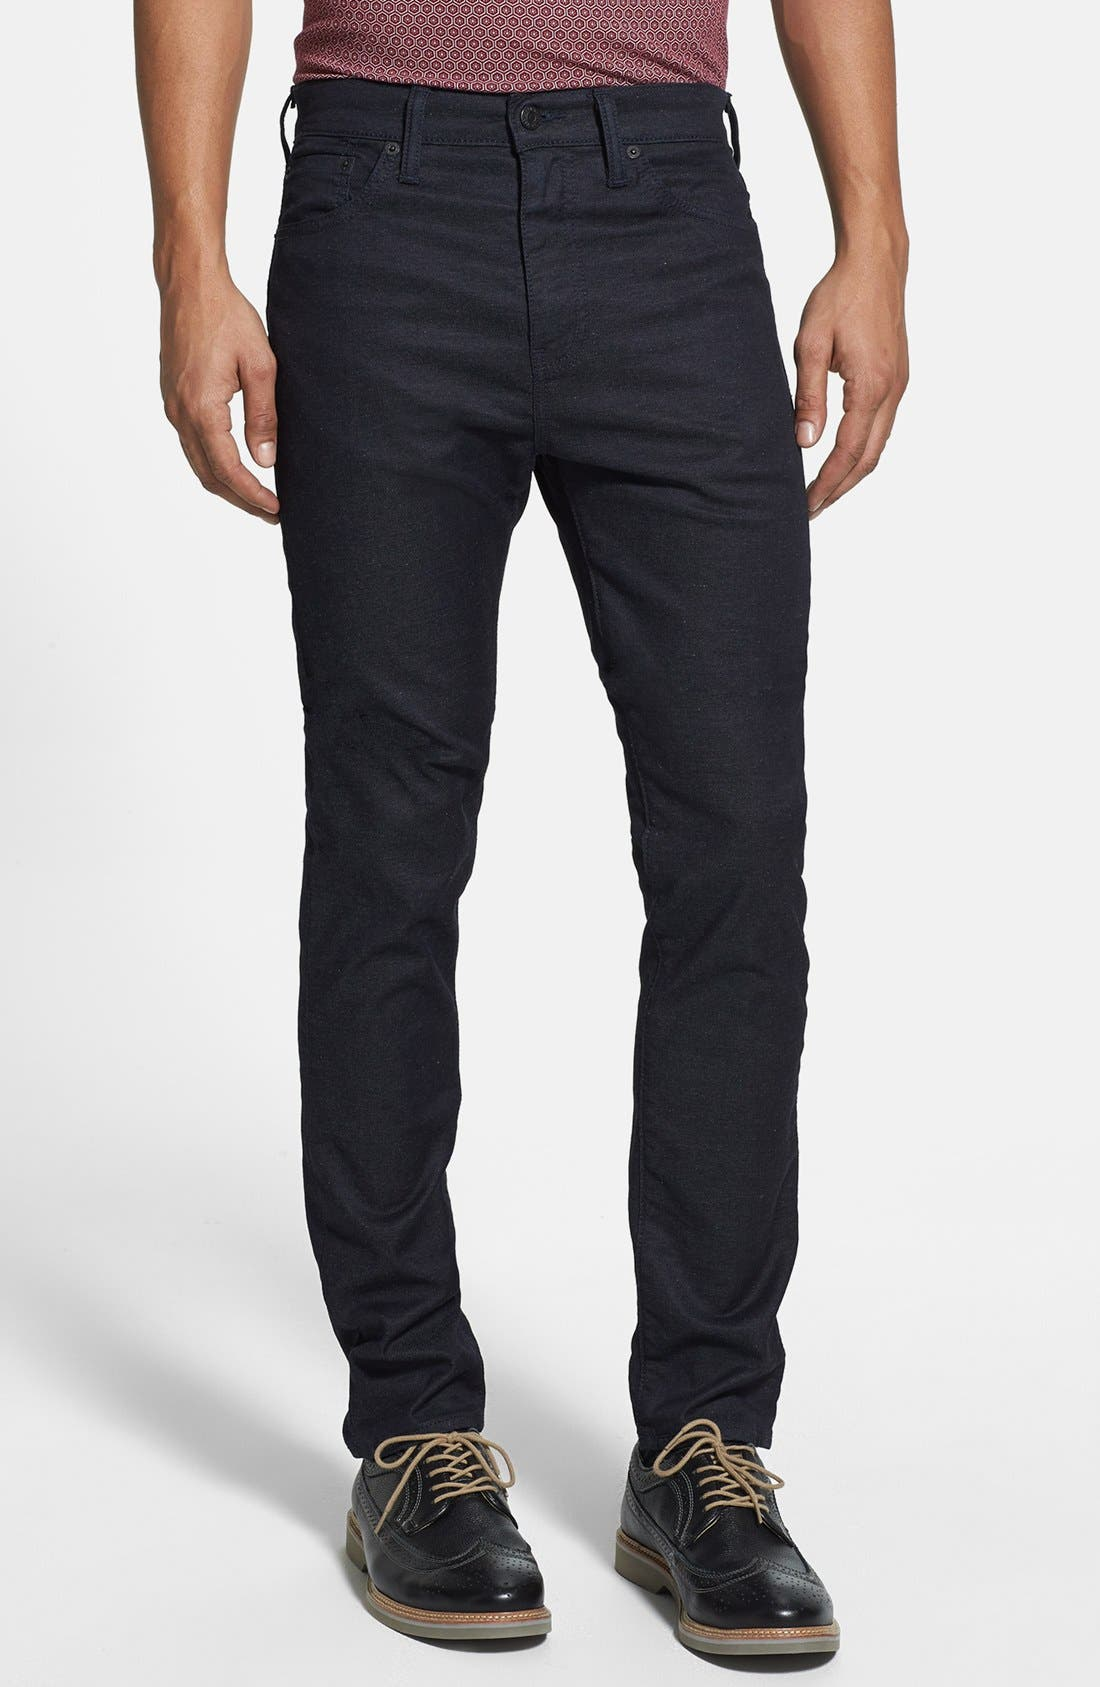 Main Image - Levi's® '513' Slim Fit Jeans (Tonic)